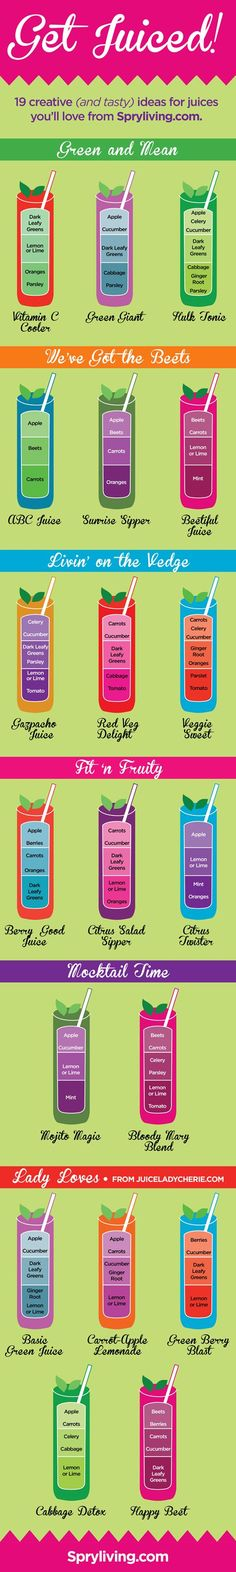 Juicing Infographic